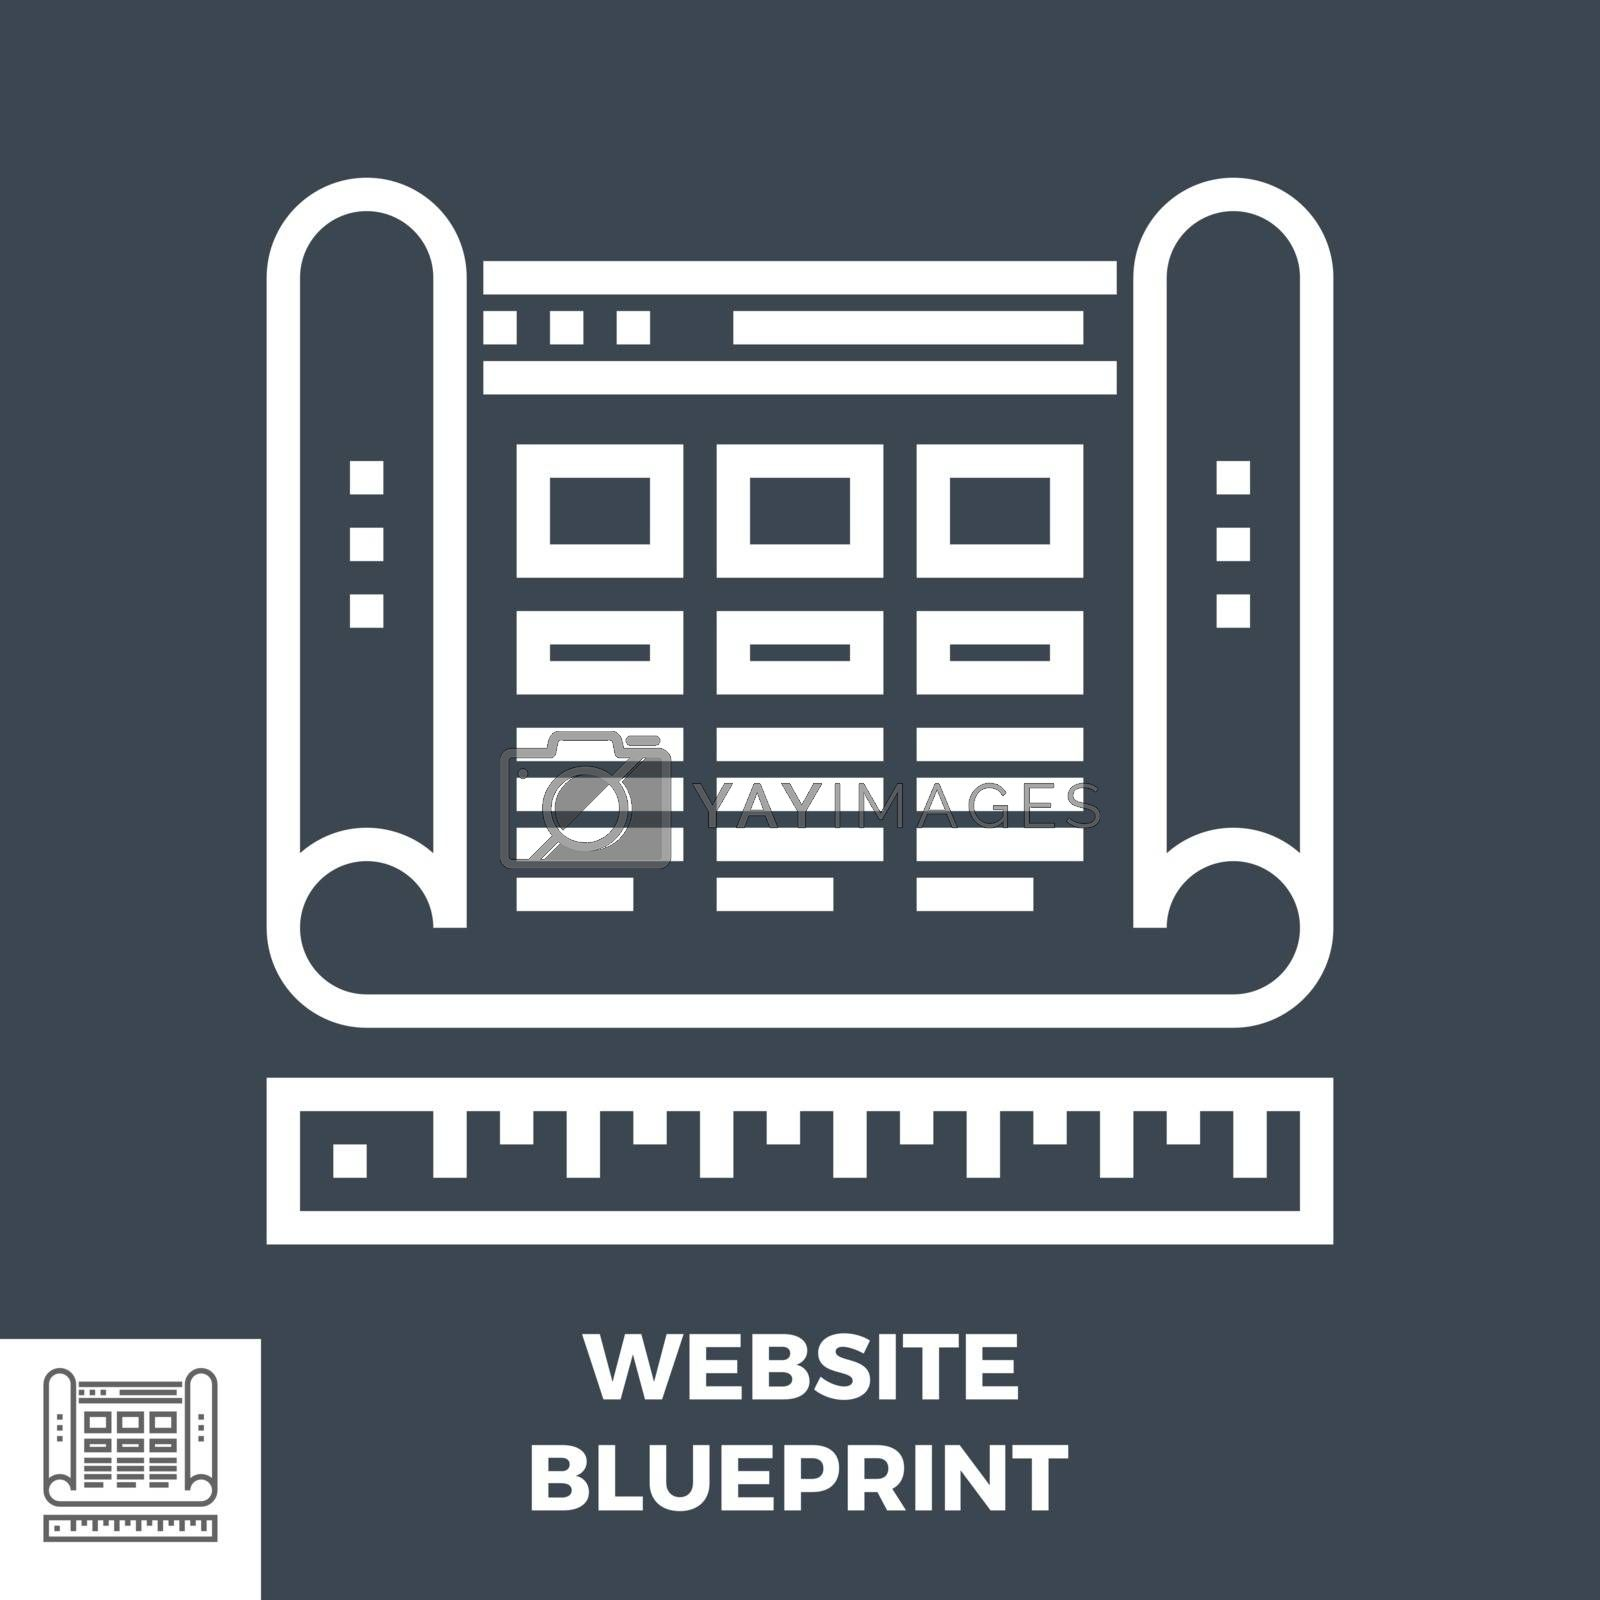 Website Blueprint Thin Line Vector Icon Isolated on the Black Background.